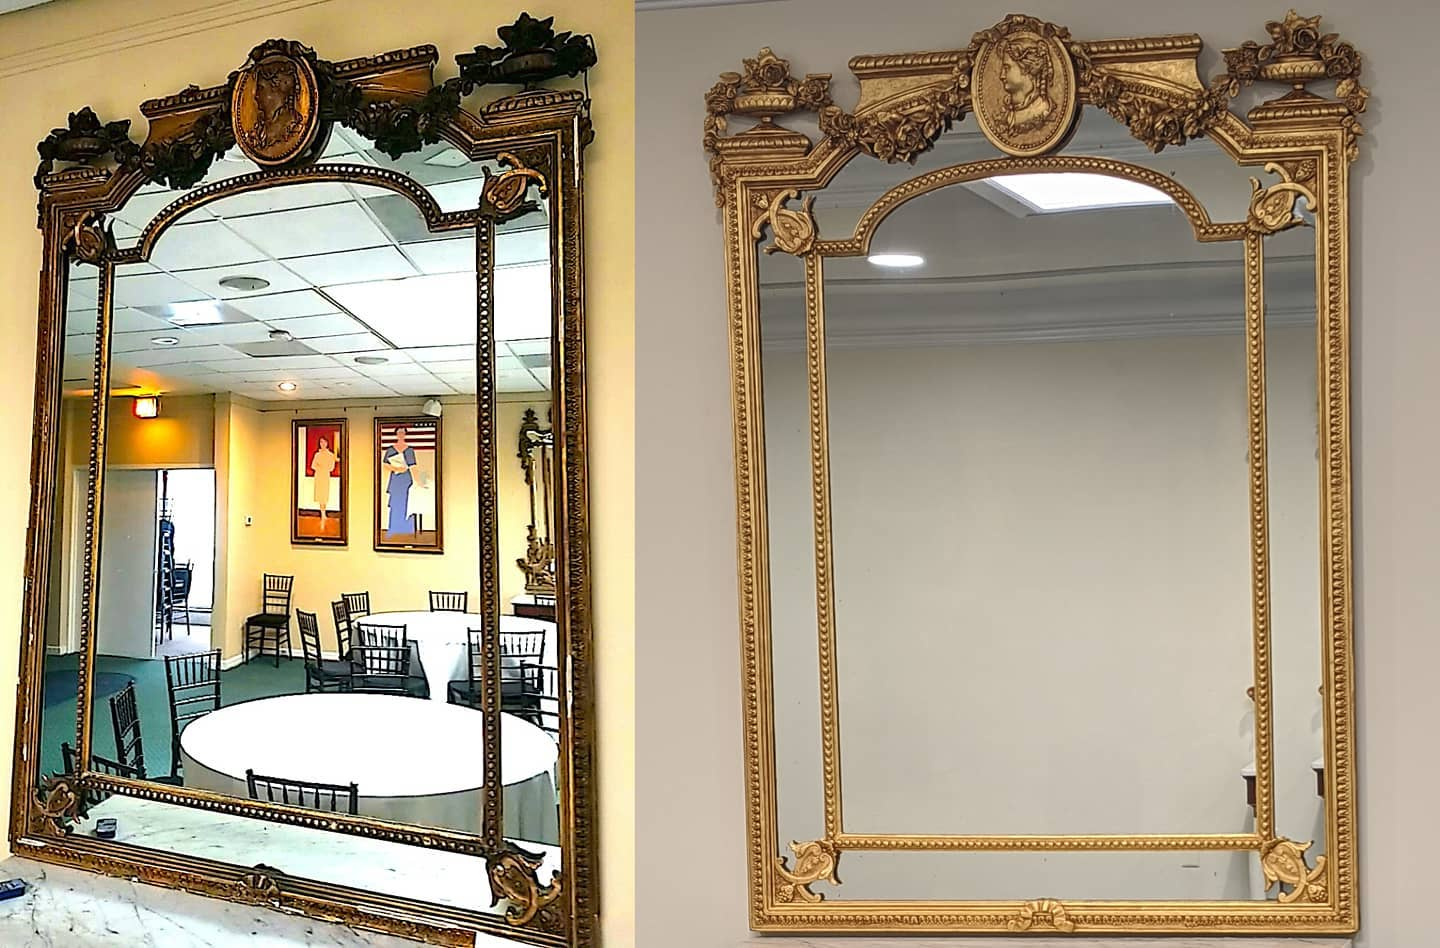 Women's National Democratic Club Victorian Mirror Frame Restoration